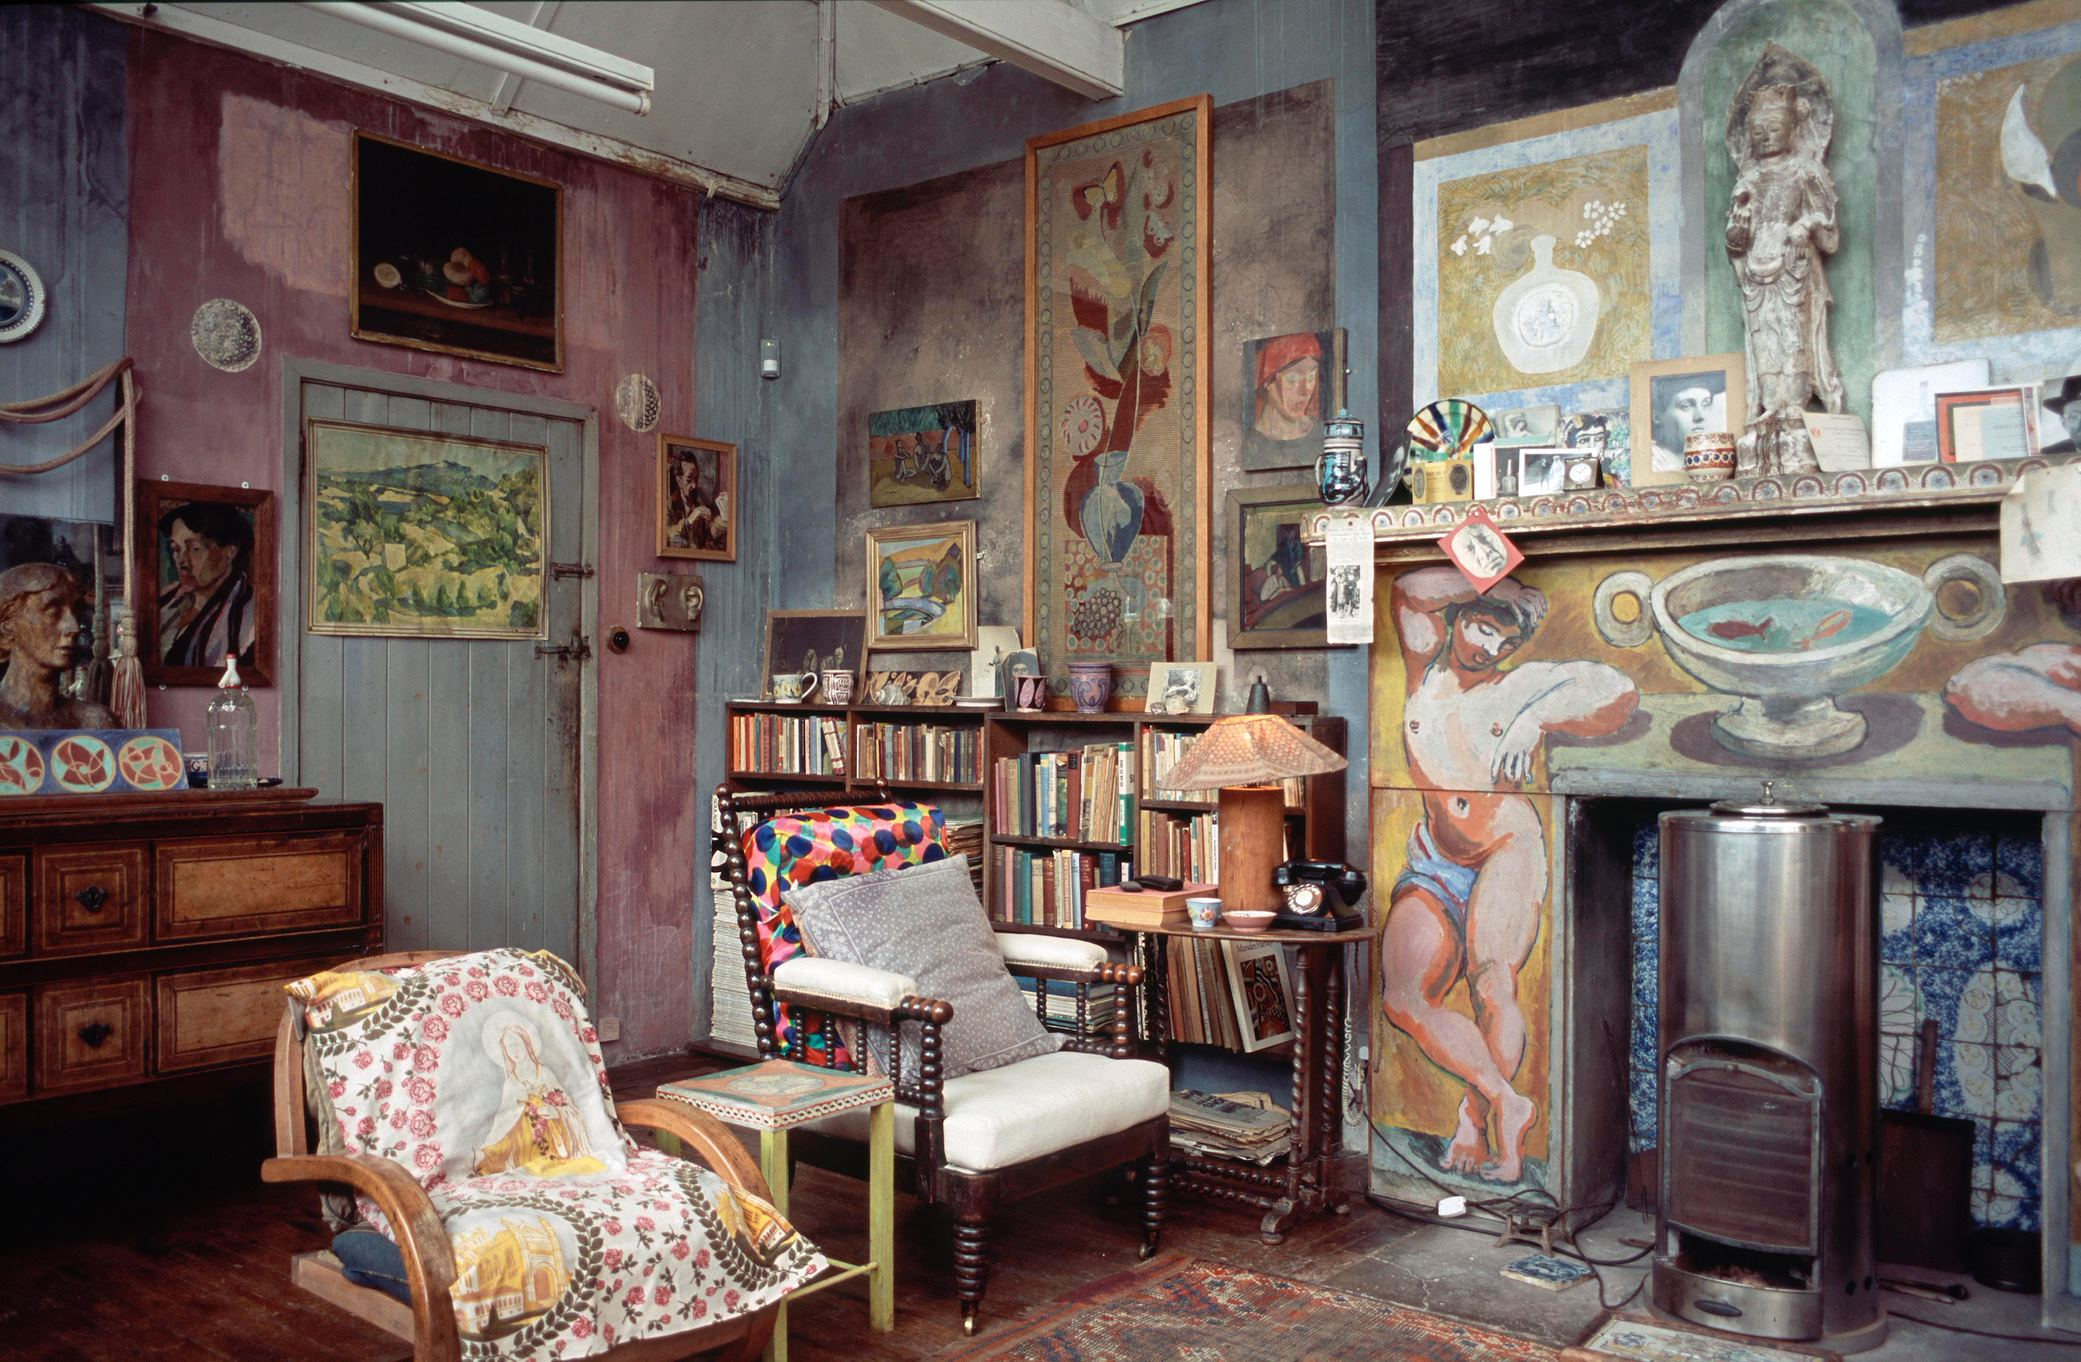 A cluttered corner of an indoor art studio - walls painted in various block colours, two chairs with multicoloured cushions, paintings and sculptures covering the walls. A bookshelf in the background and an unlit fireplace with a tiled and painted facade